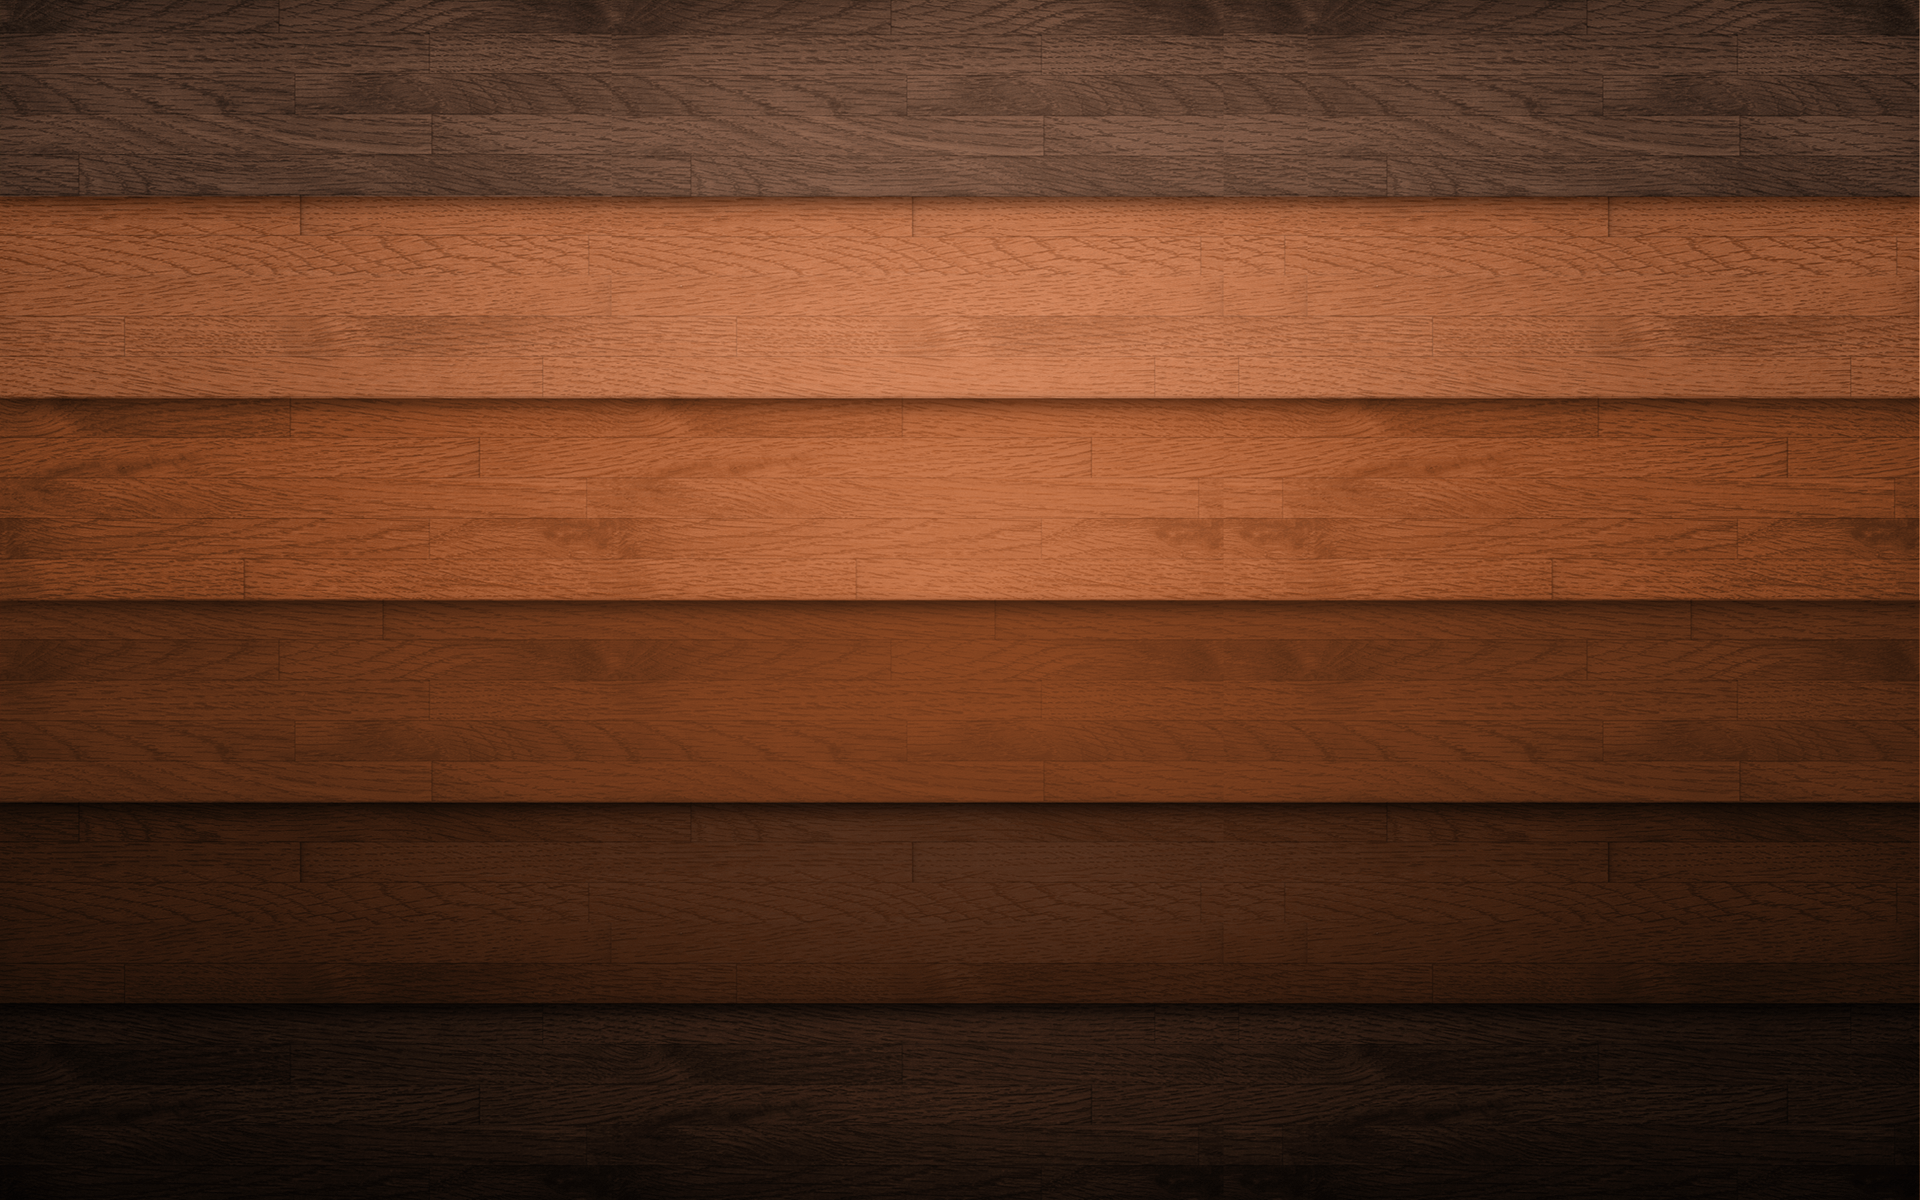 wood texture for use